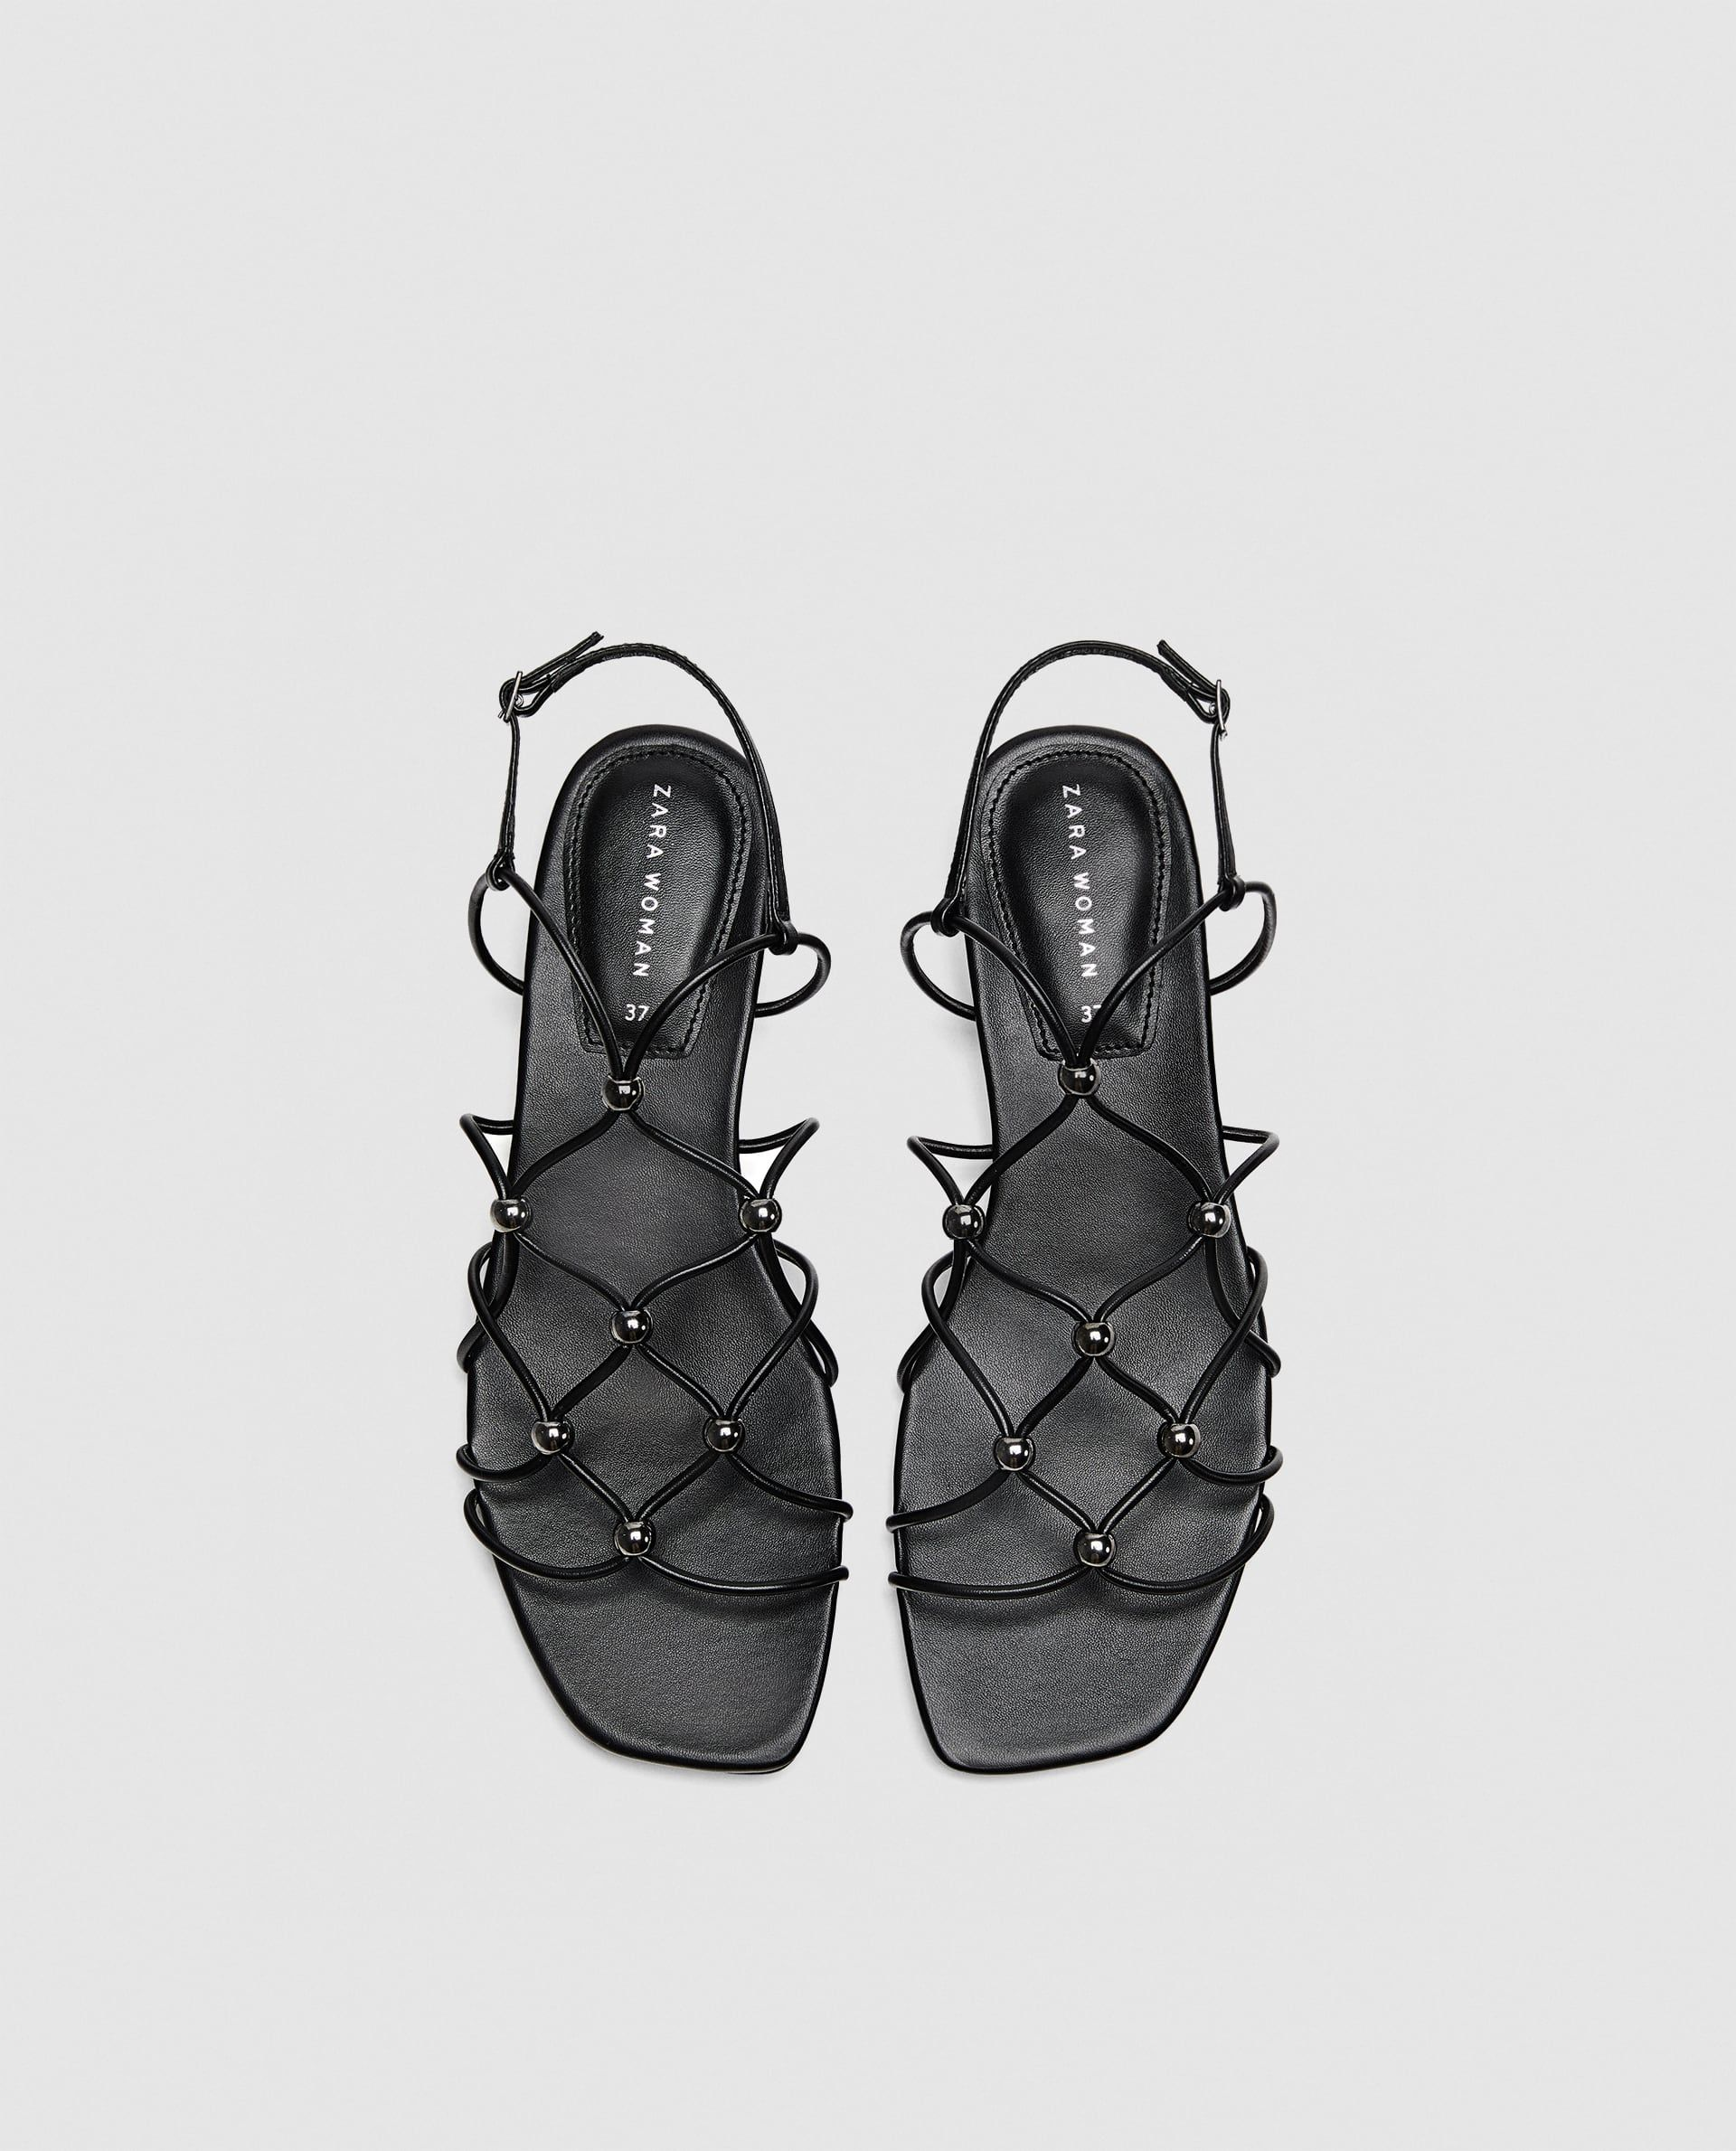 198360f54 Image 3 of STRAPPY SANDALS WITH METAL DETAILS from Zara